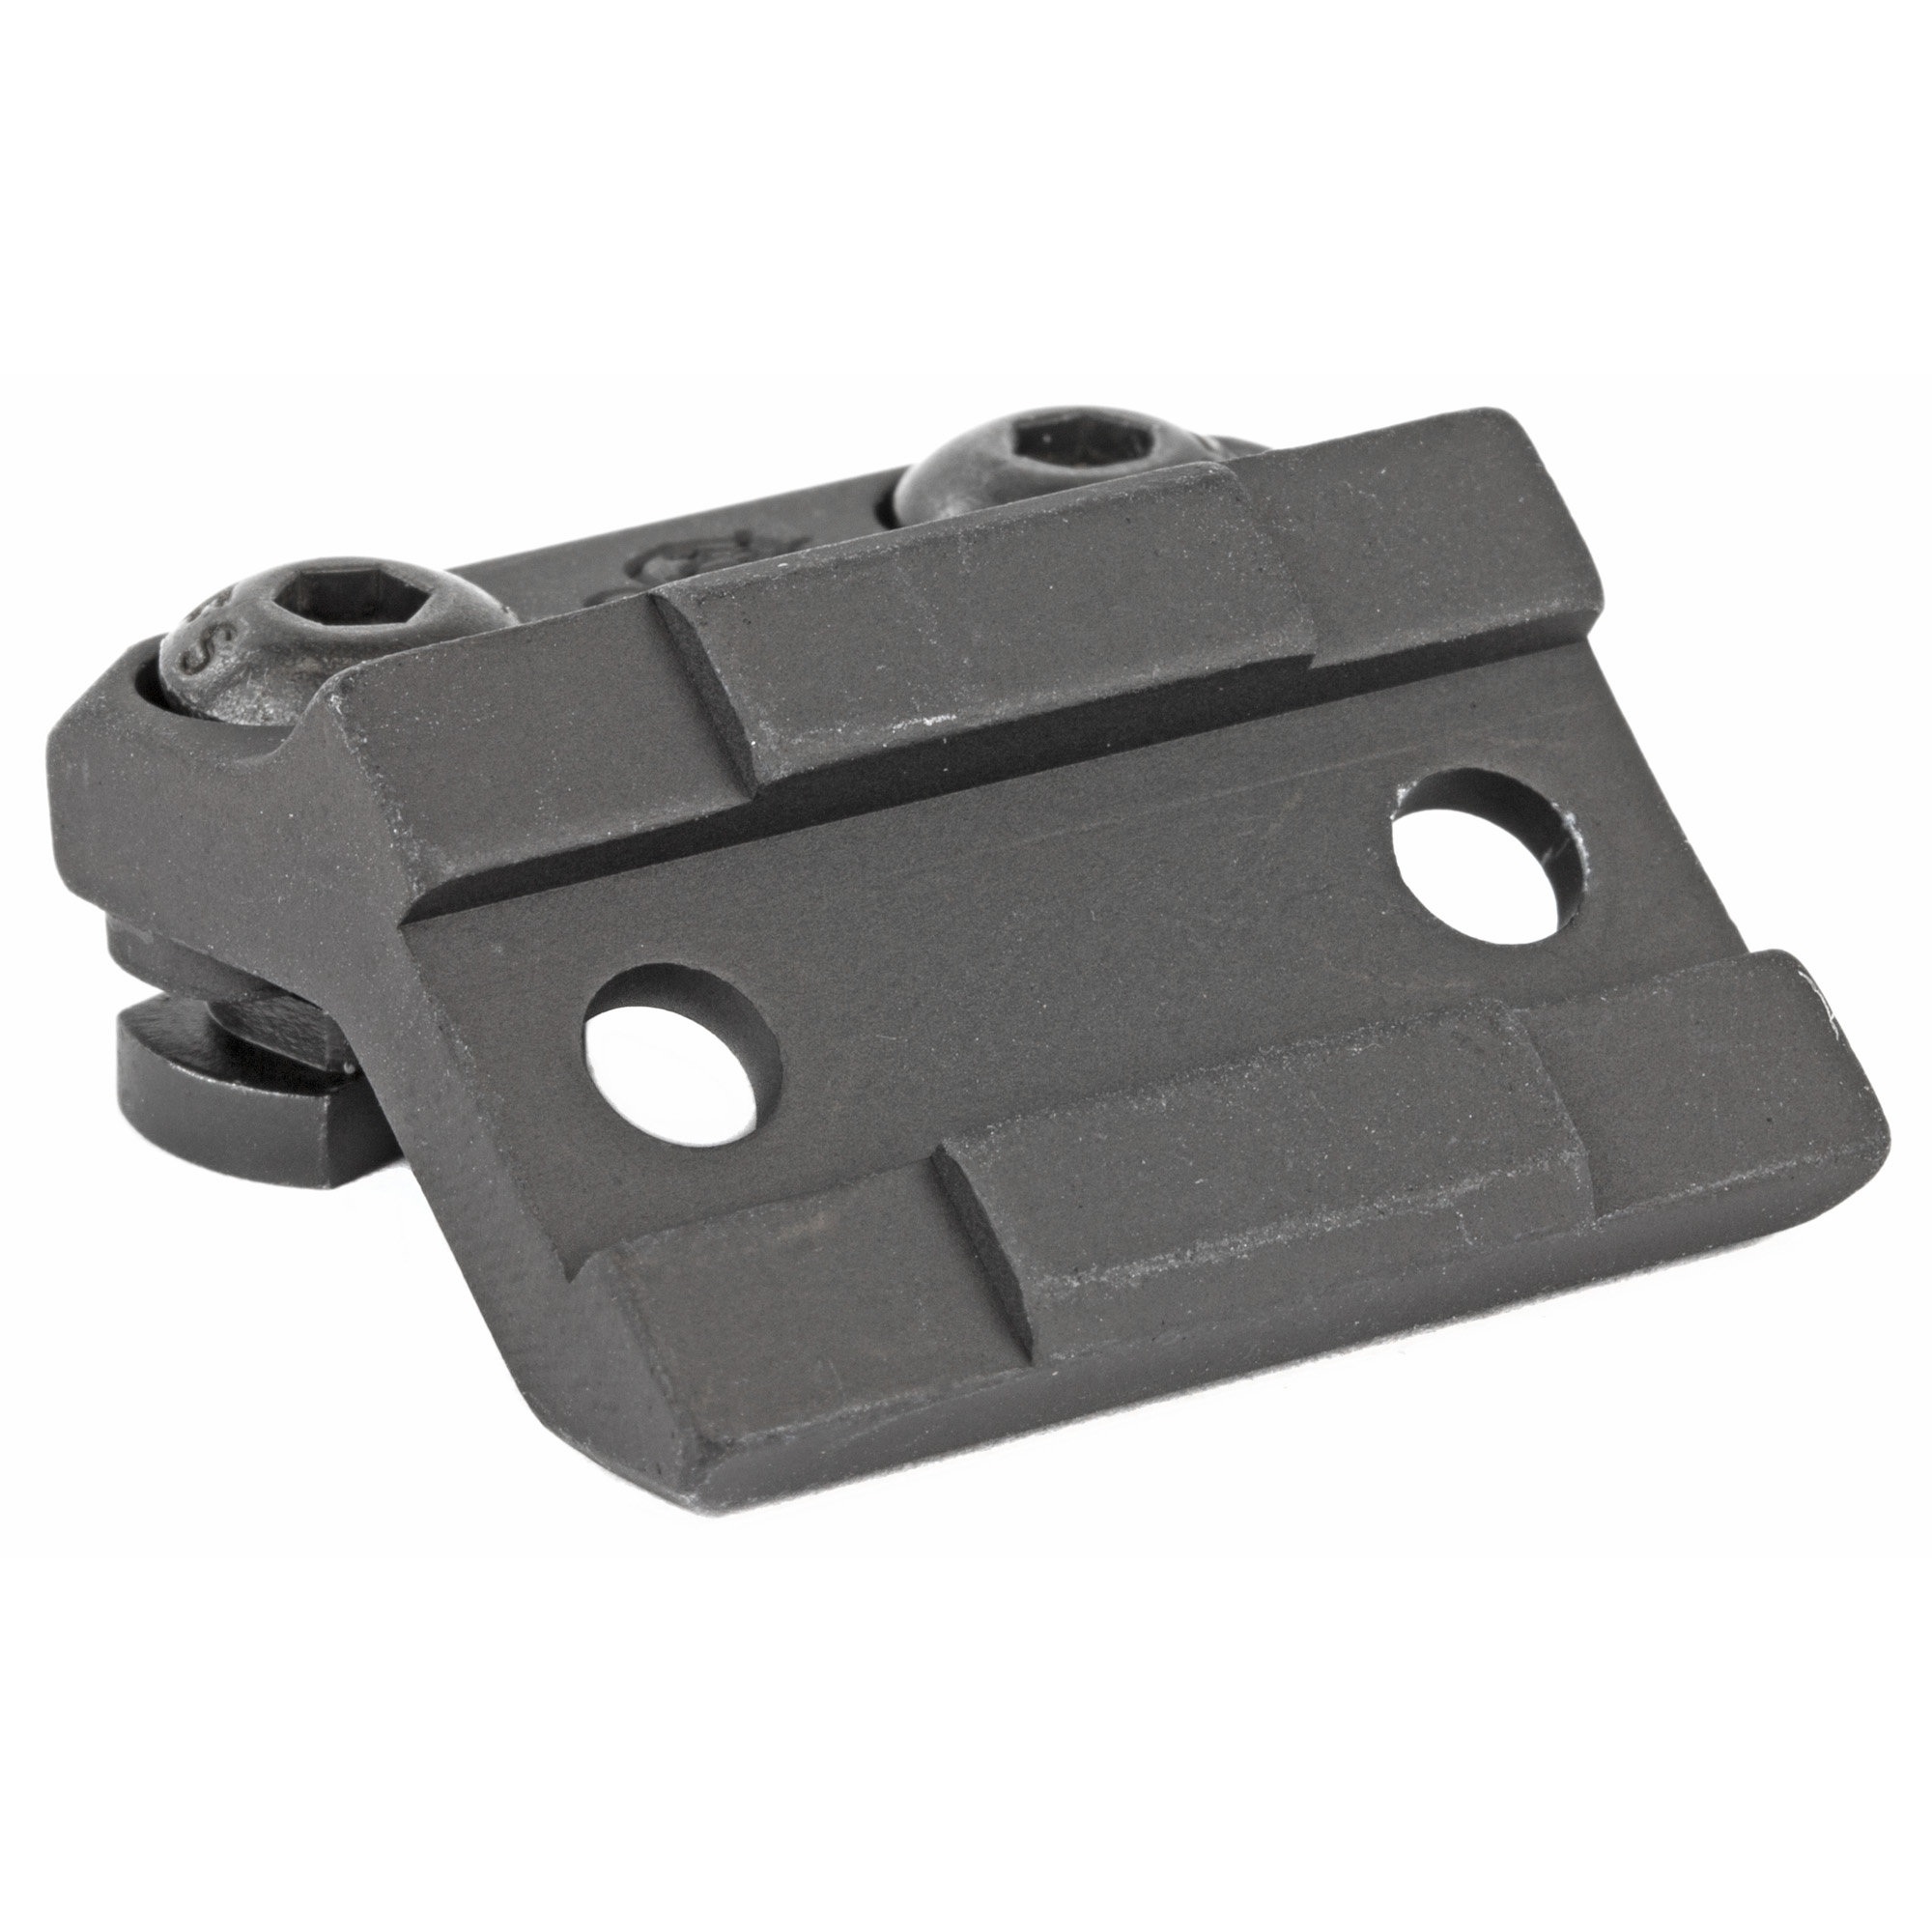 """Knights Armament Co.'s M-LOK mount for the SureFire M300 and M600 Scout Lights is a lightweight"""" direct-attach mounting platform. The mount can be positioned to place the light tight to the handguard at any position from 1:30 to 11:30. Aluminum construction."""